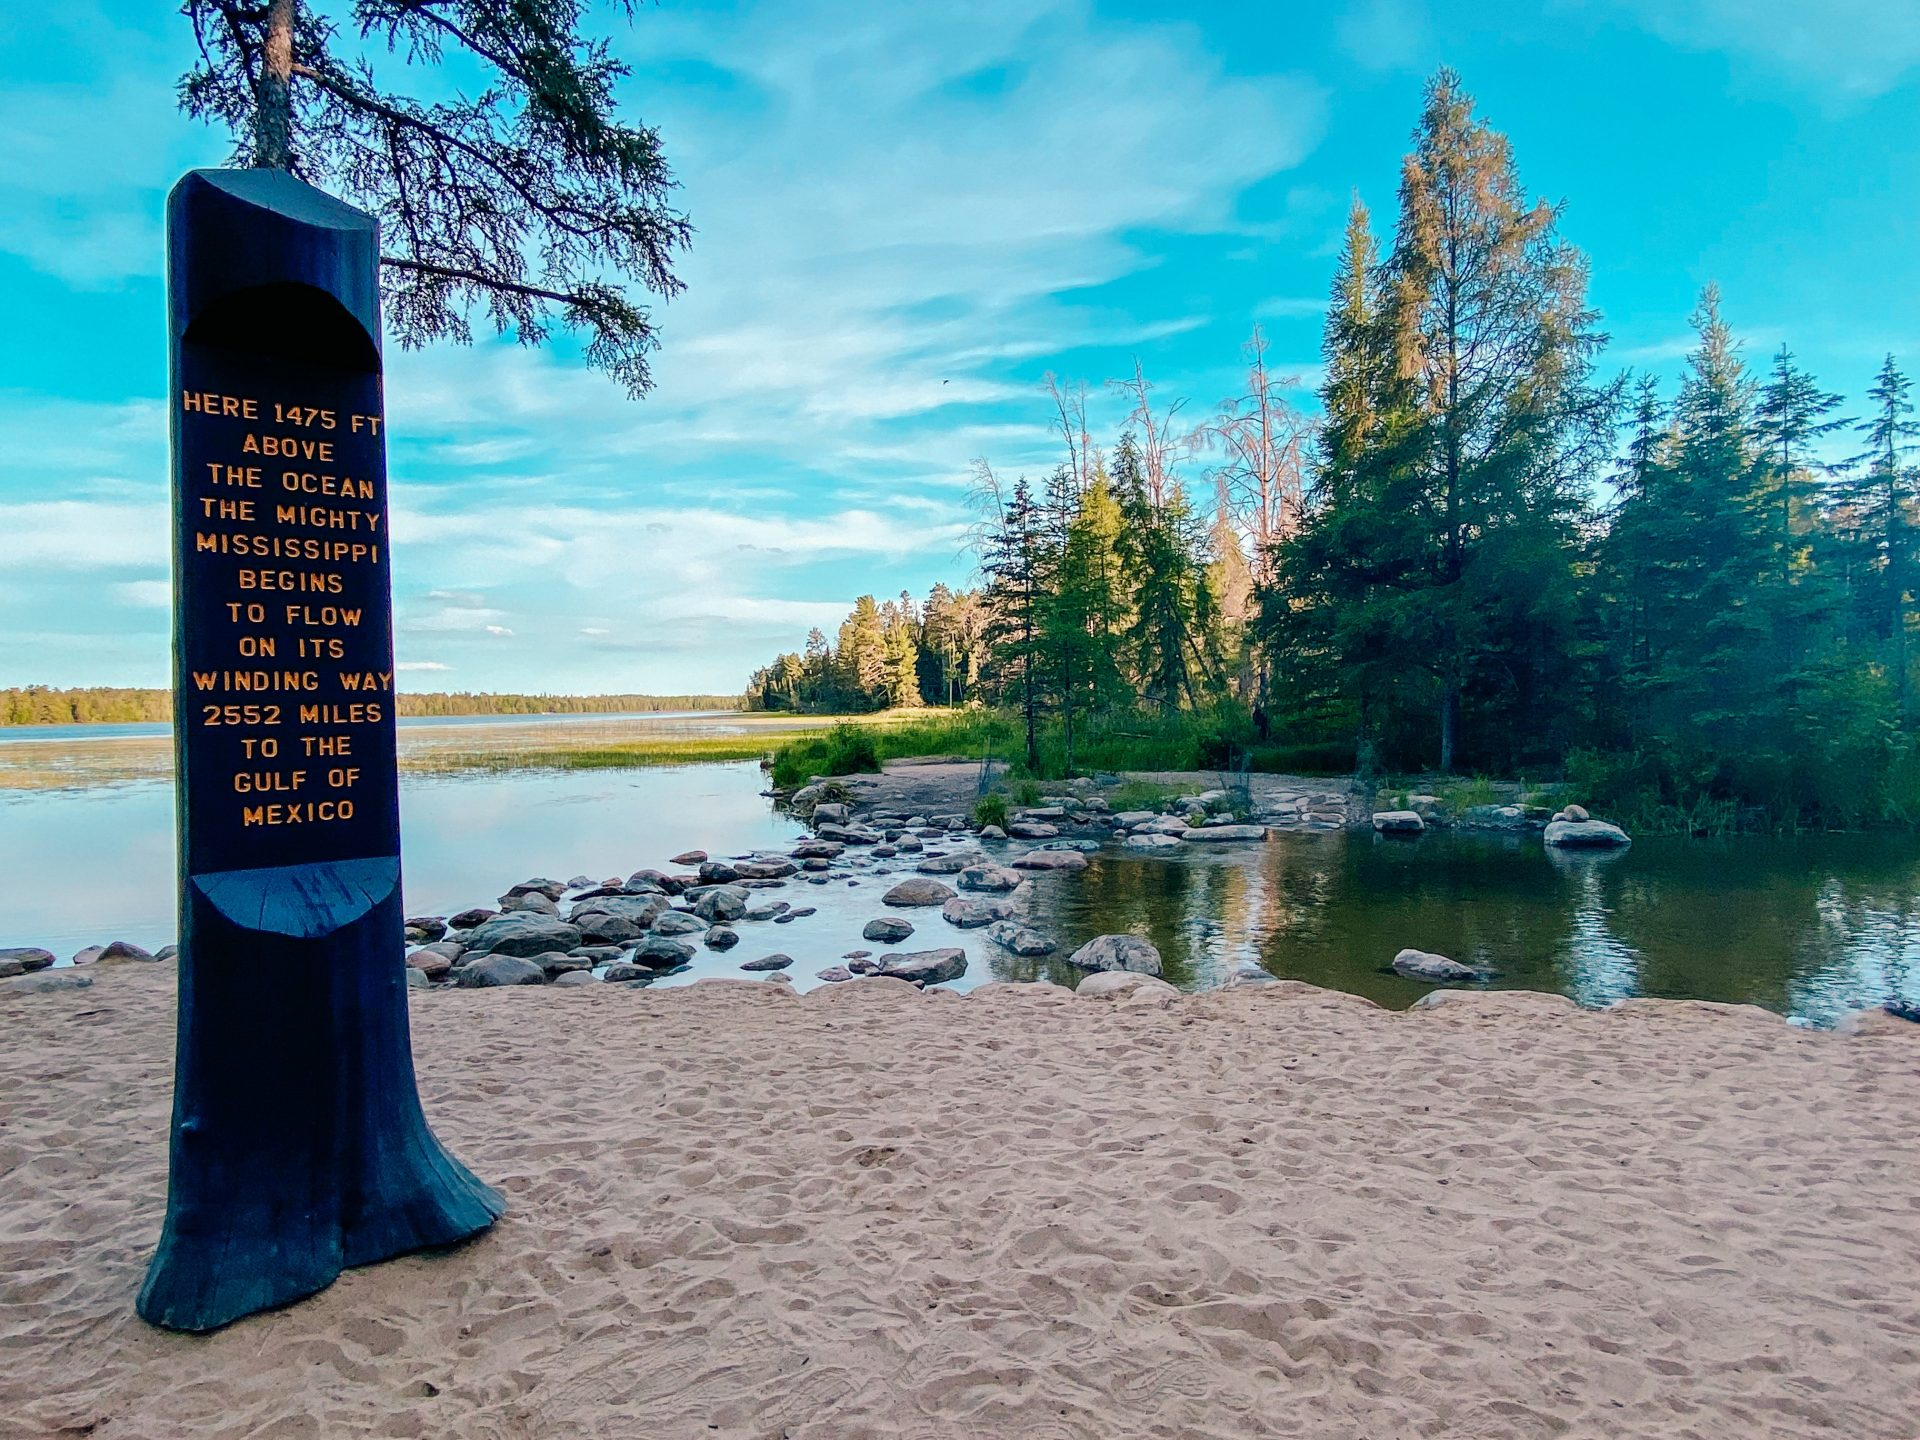 Sign located at the headwaters of the Mississippi River at Itasca State Park in Minnesota